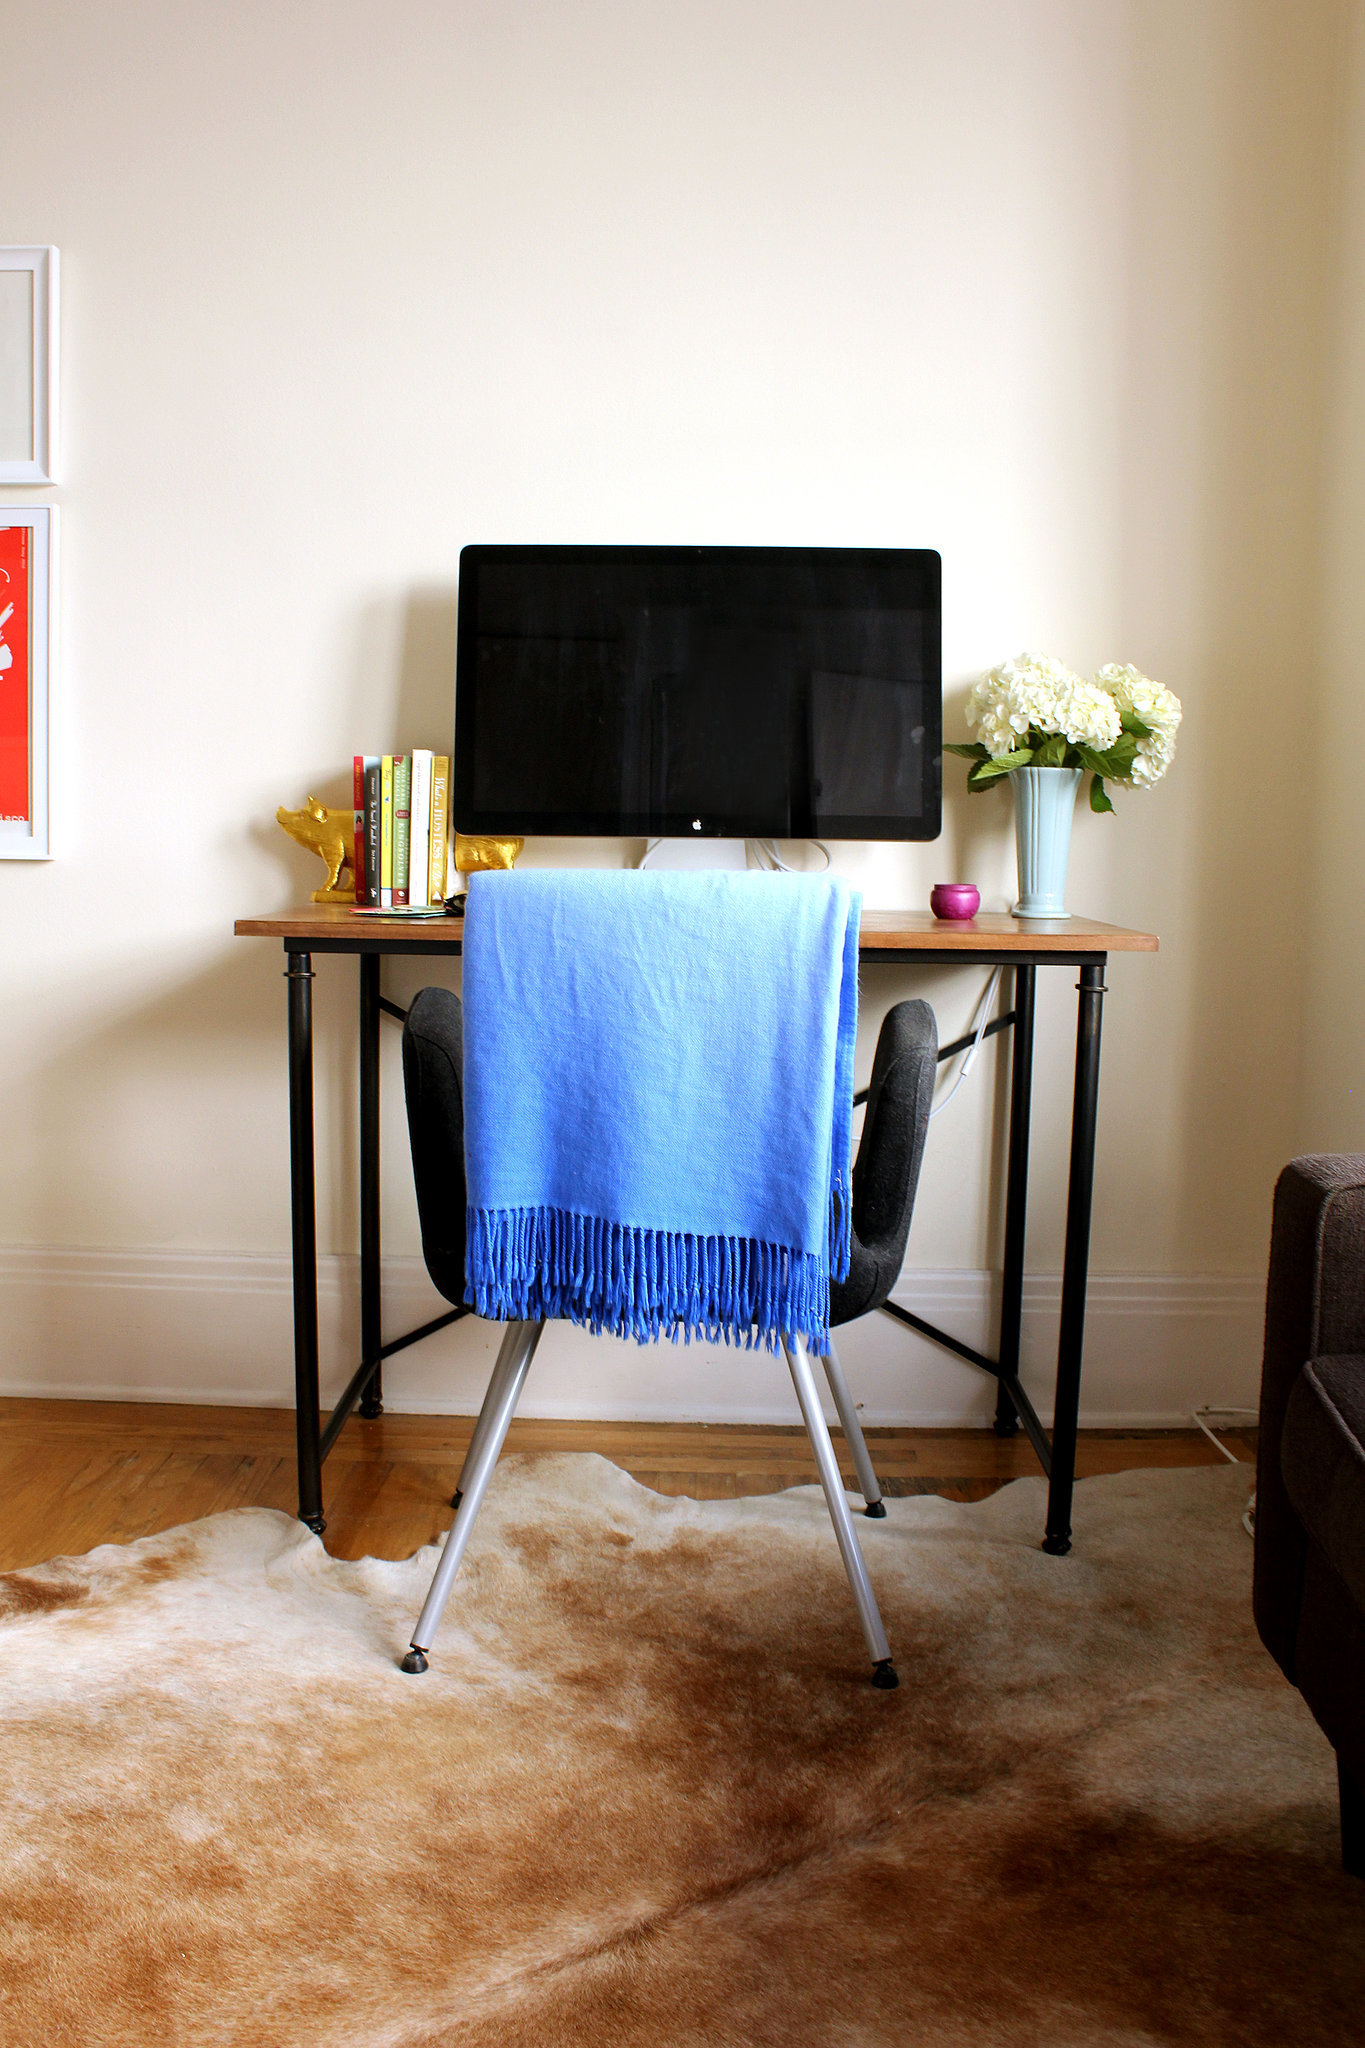 """Who says you don't have room for a work space in a studio? The wood table is not only beautiful but also practical. """"Before I buy anything, I try to make sure it serves multiple purposes,"""" says Emily. """"My desk will one day make a great console table."""""""